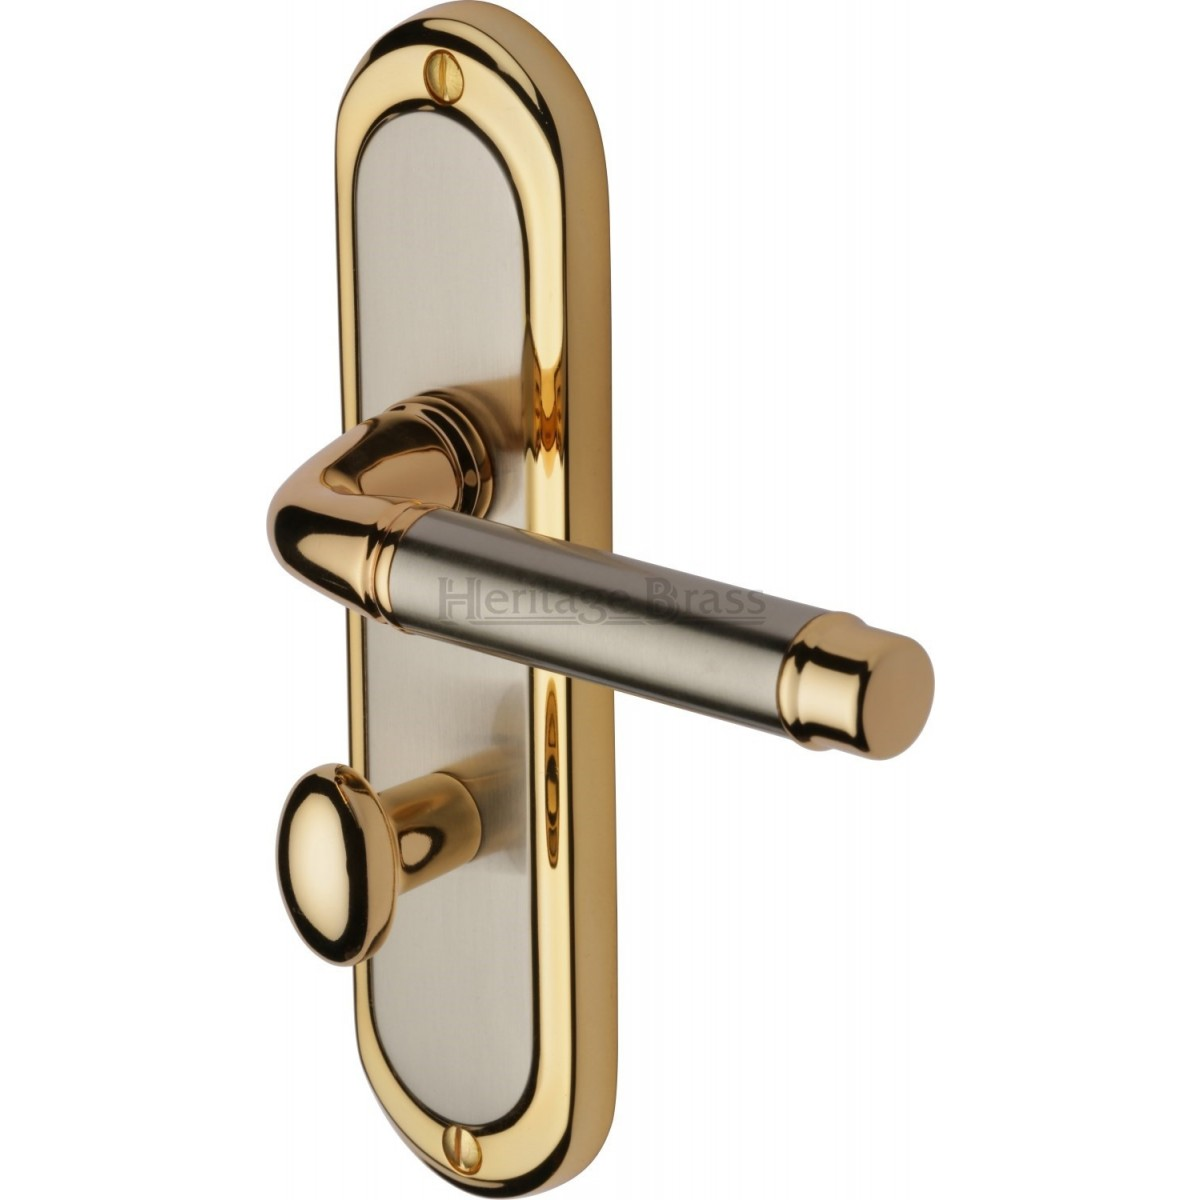 Heritage Brass Saturn Door Handle Sat1000 Door Handles